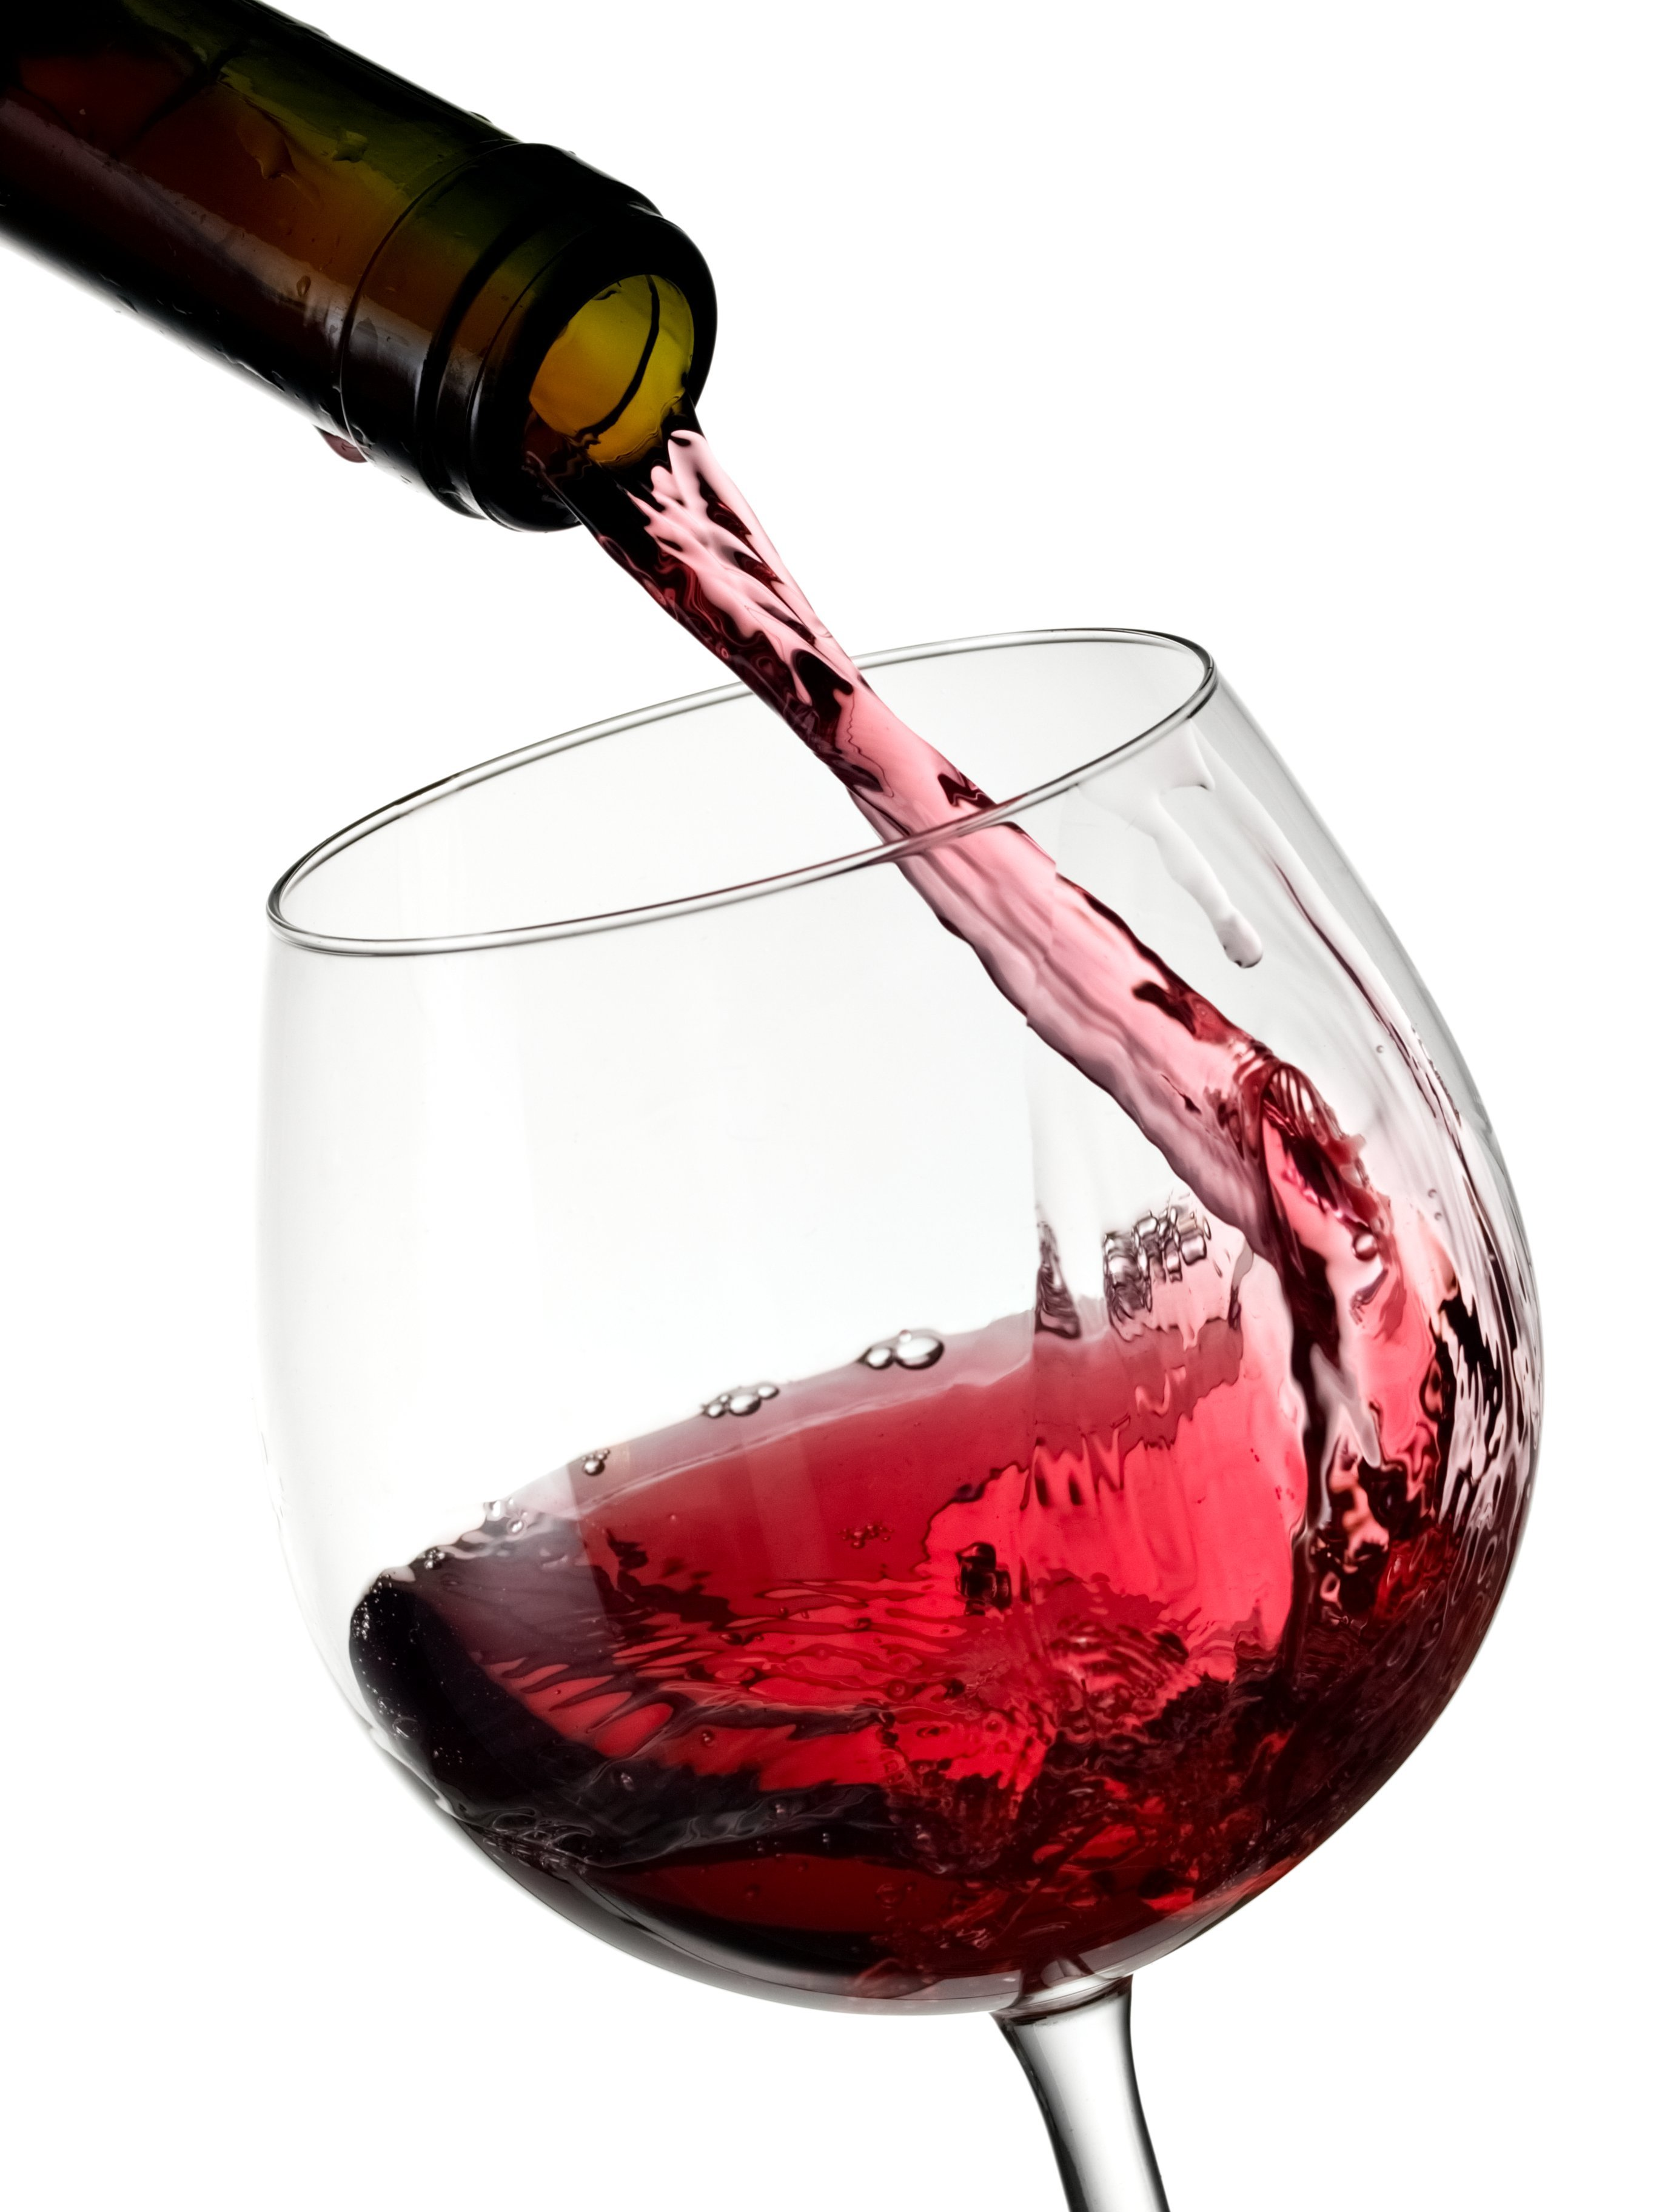 HQ Wine Wallpapers   File 518.42Kb